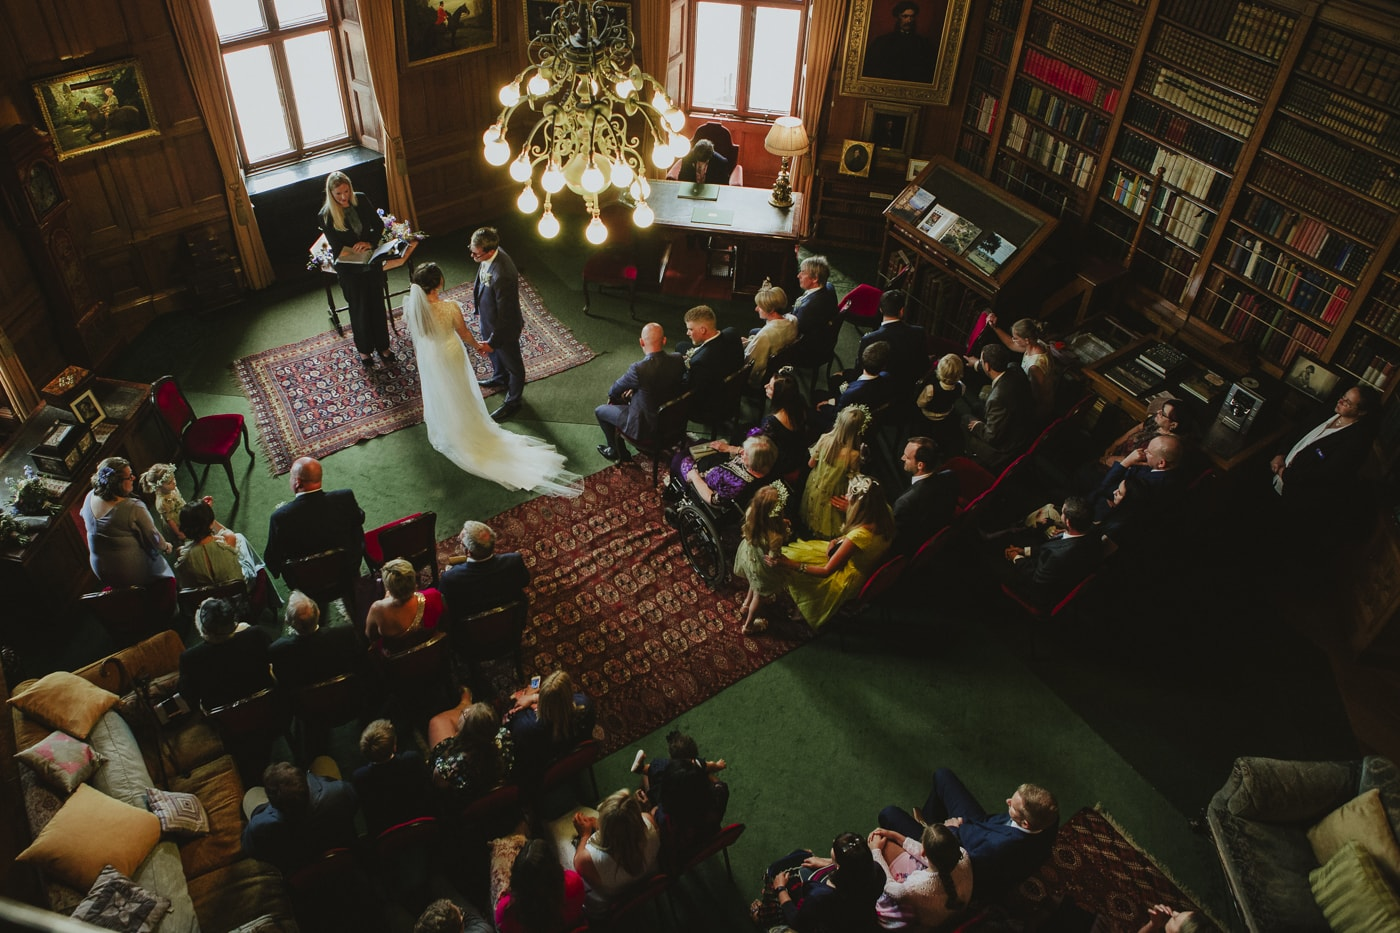 Second shooter photograph from above the ceremony room